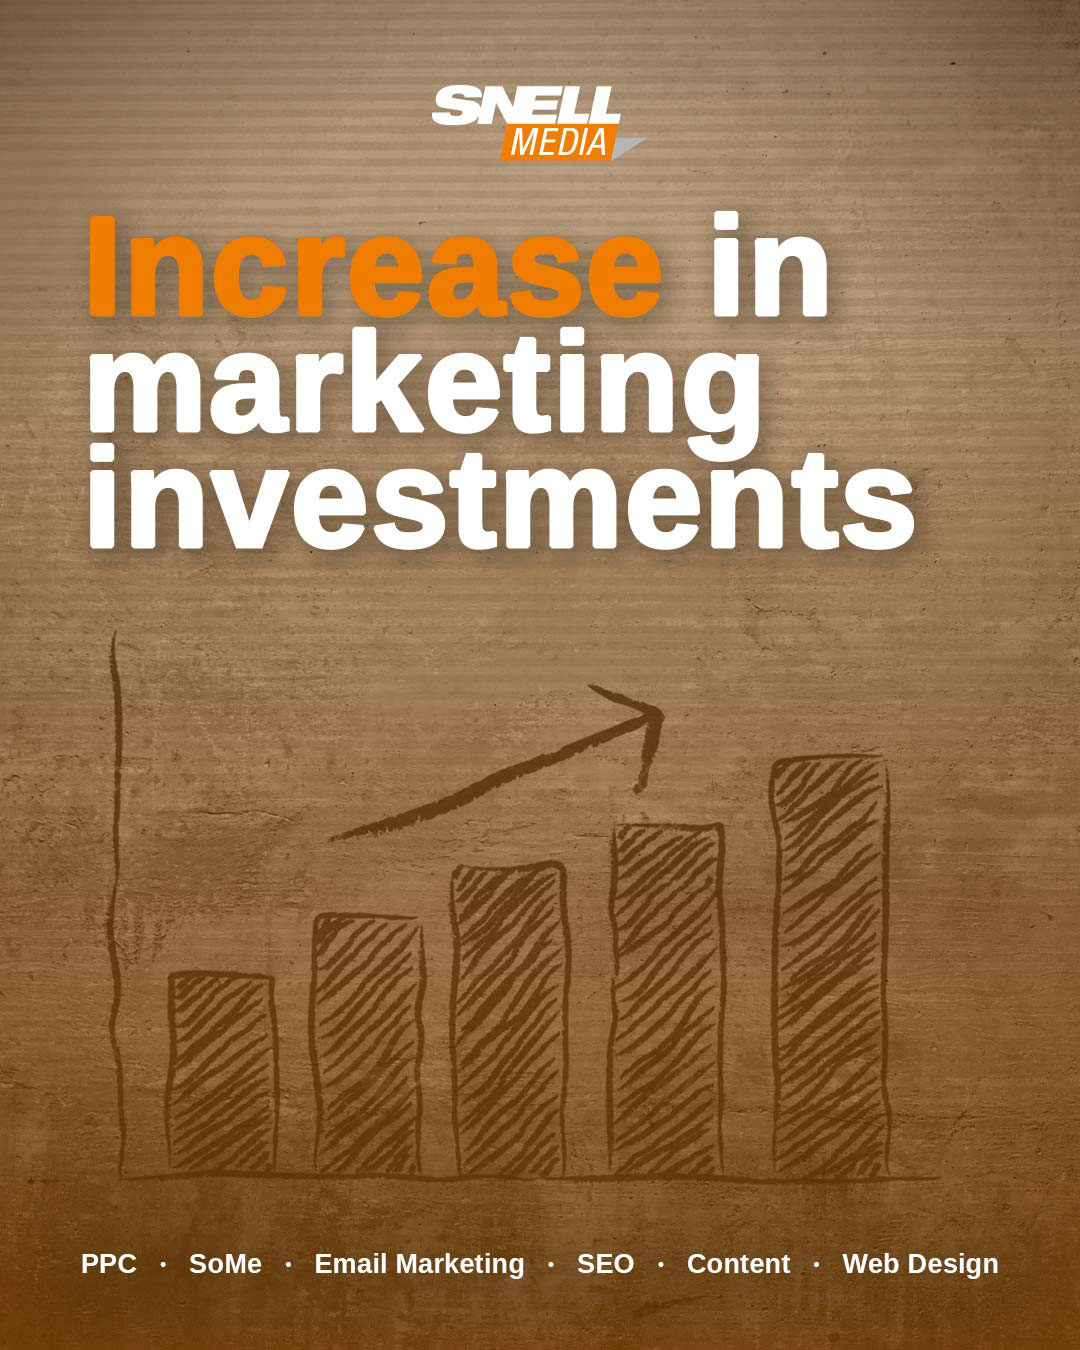 Increase in Paid Marketing Investments 11th B2B Digital Marketing Trend